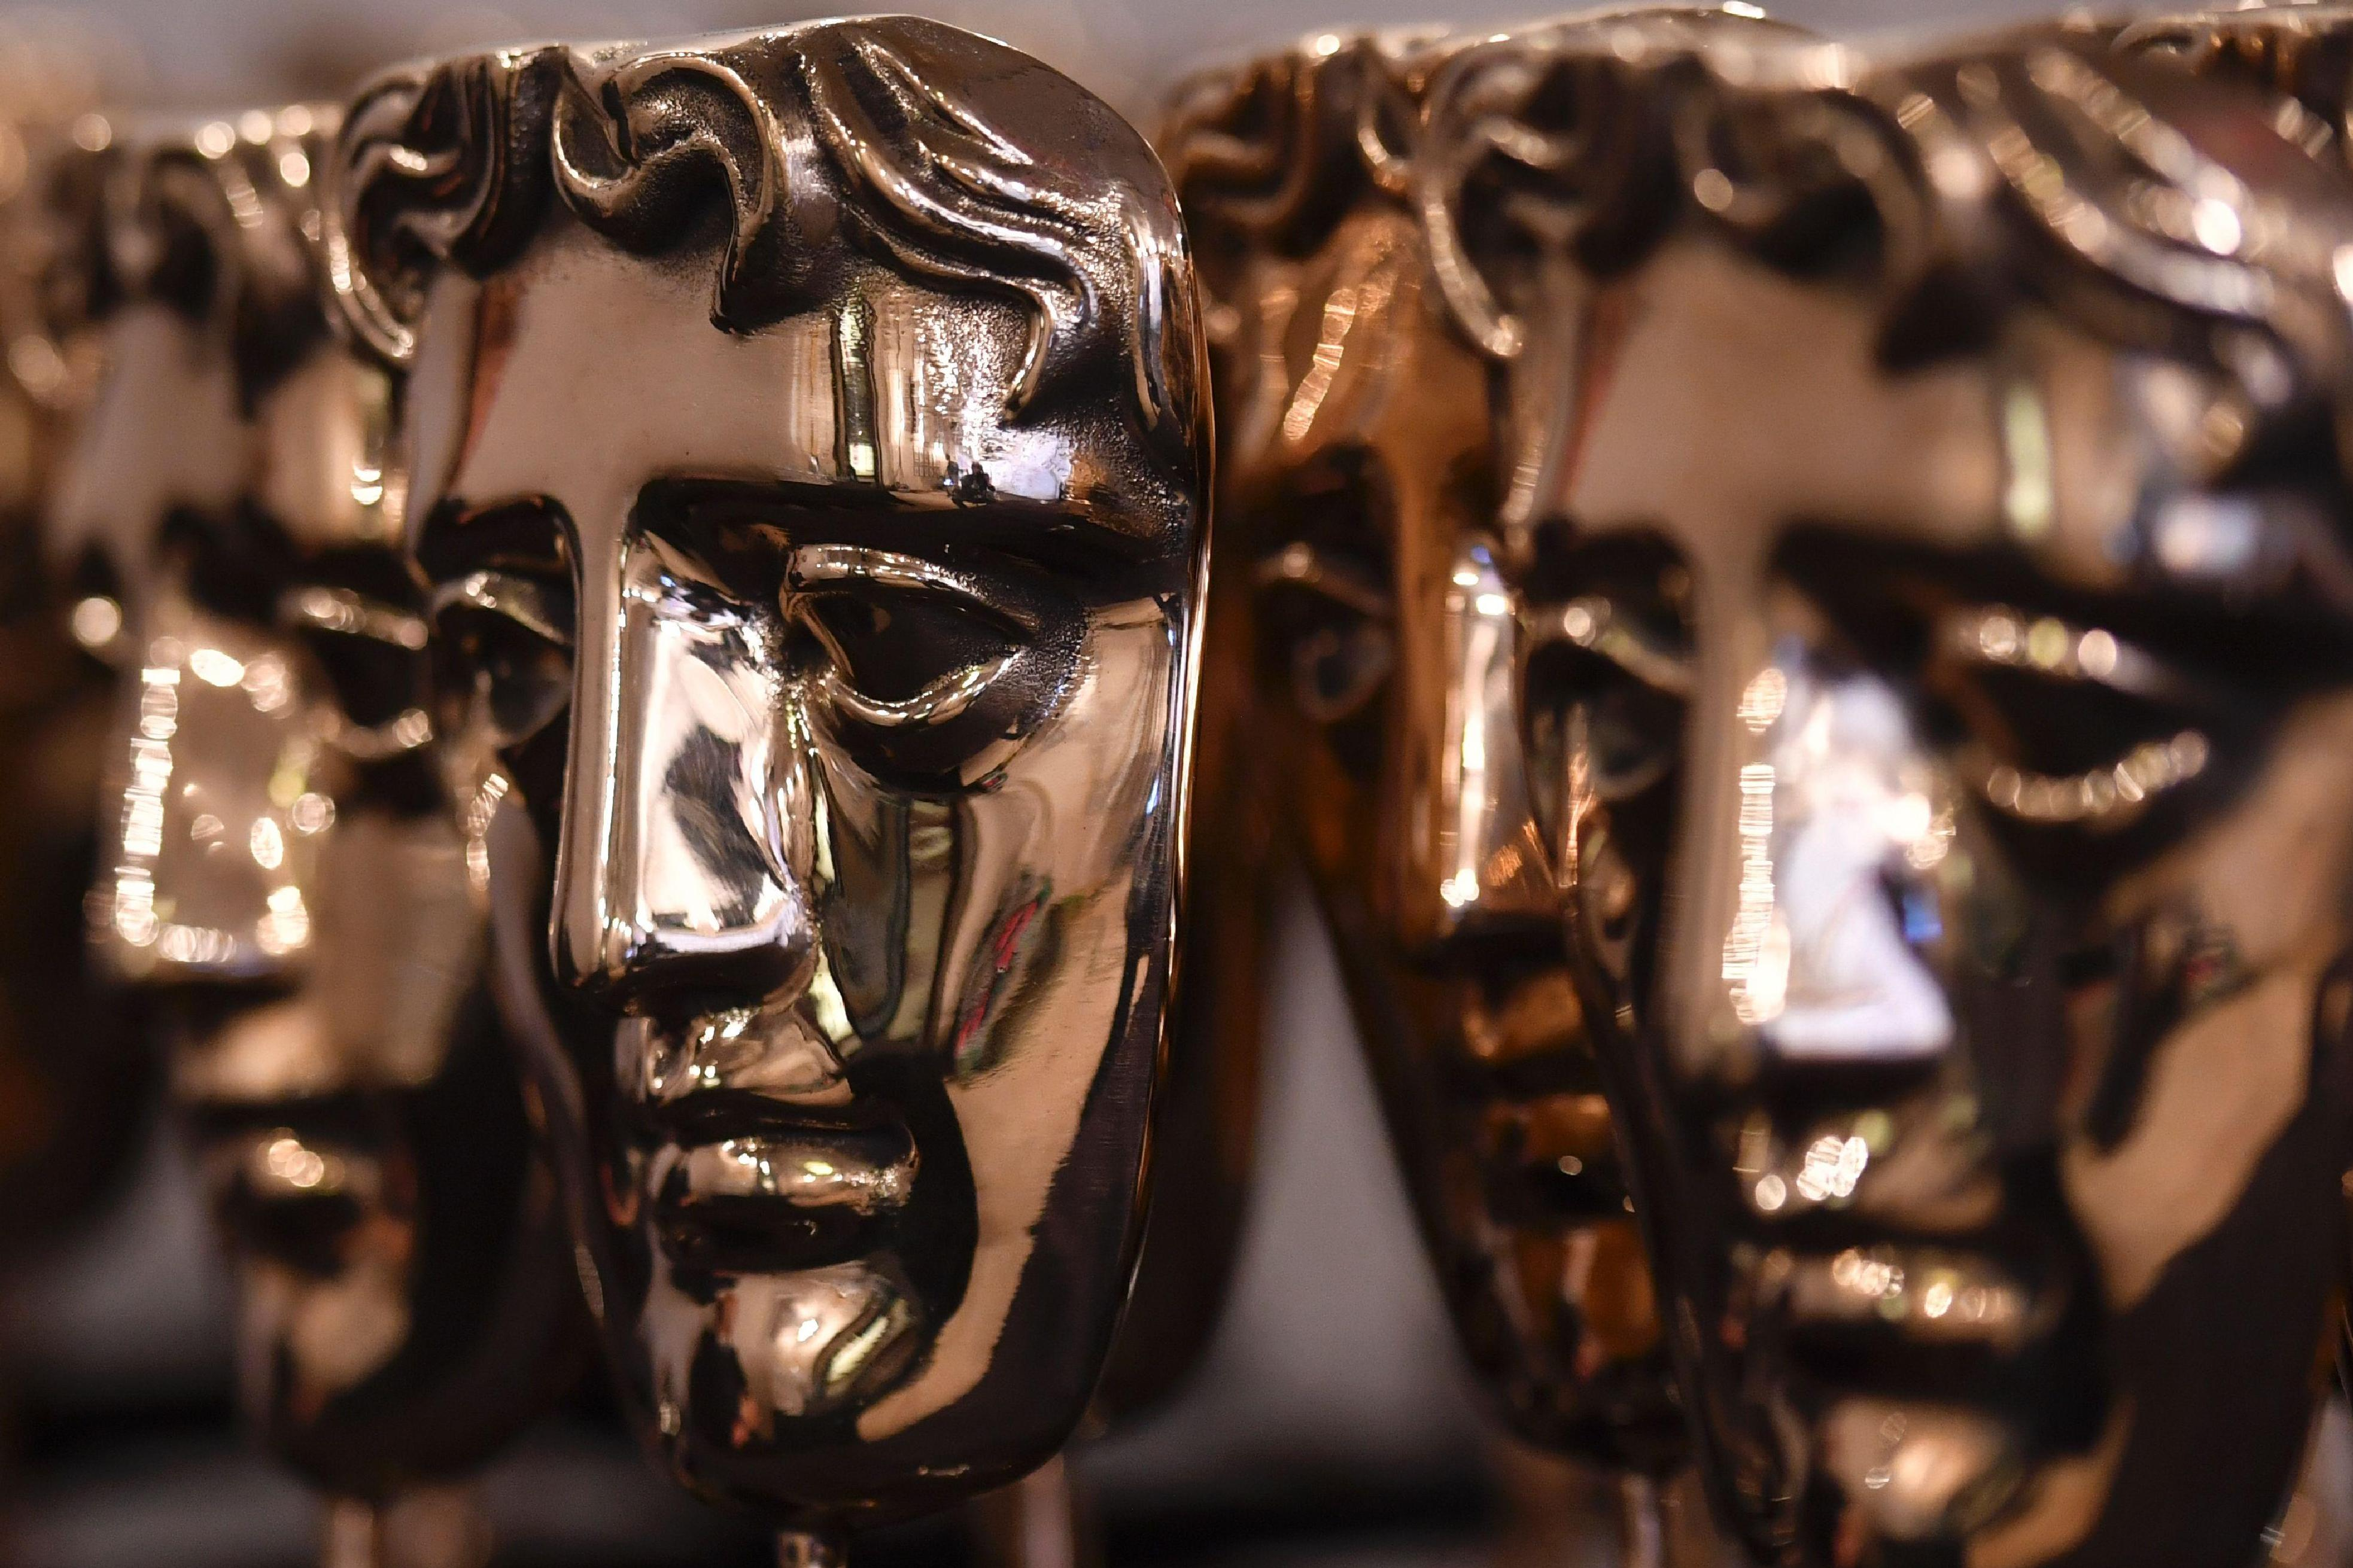 who-are-the-bafta-2019-best-actor-nominees-and-what-are-the-latest-odds-on-the-winner